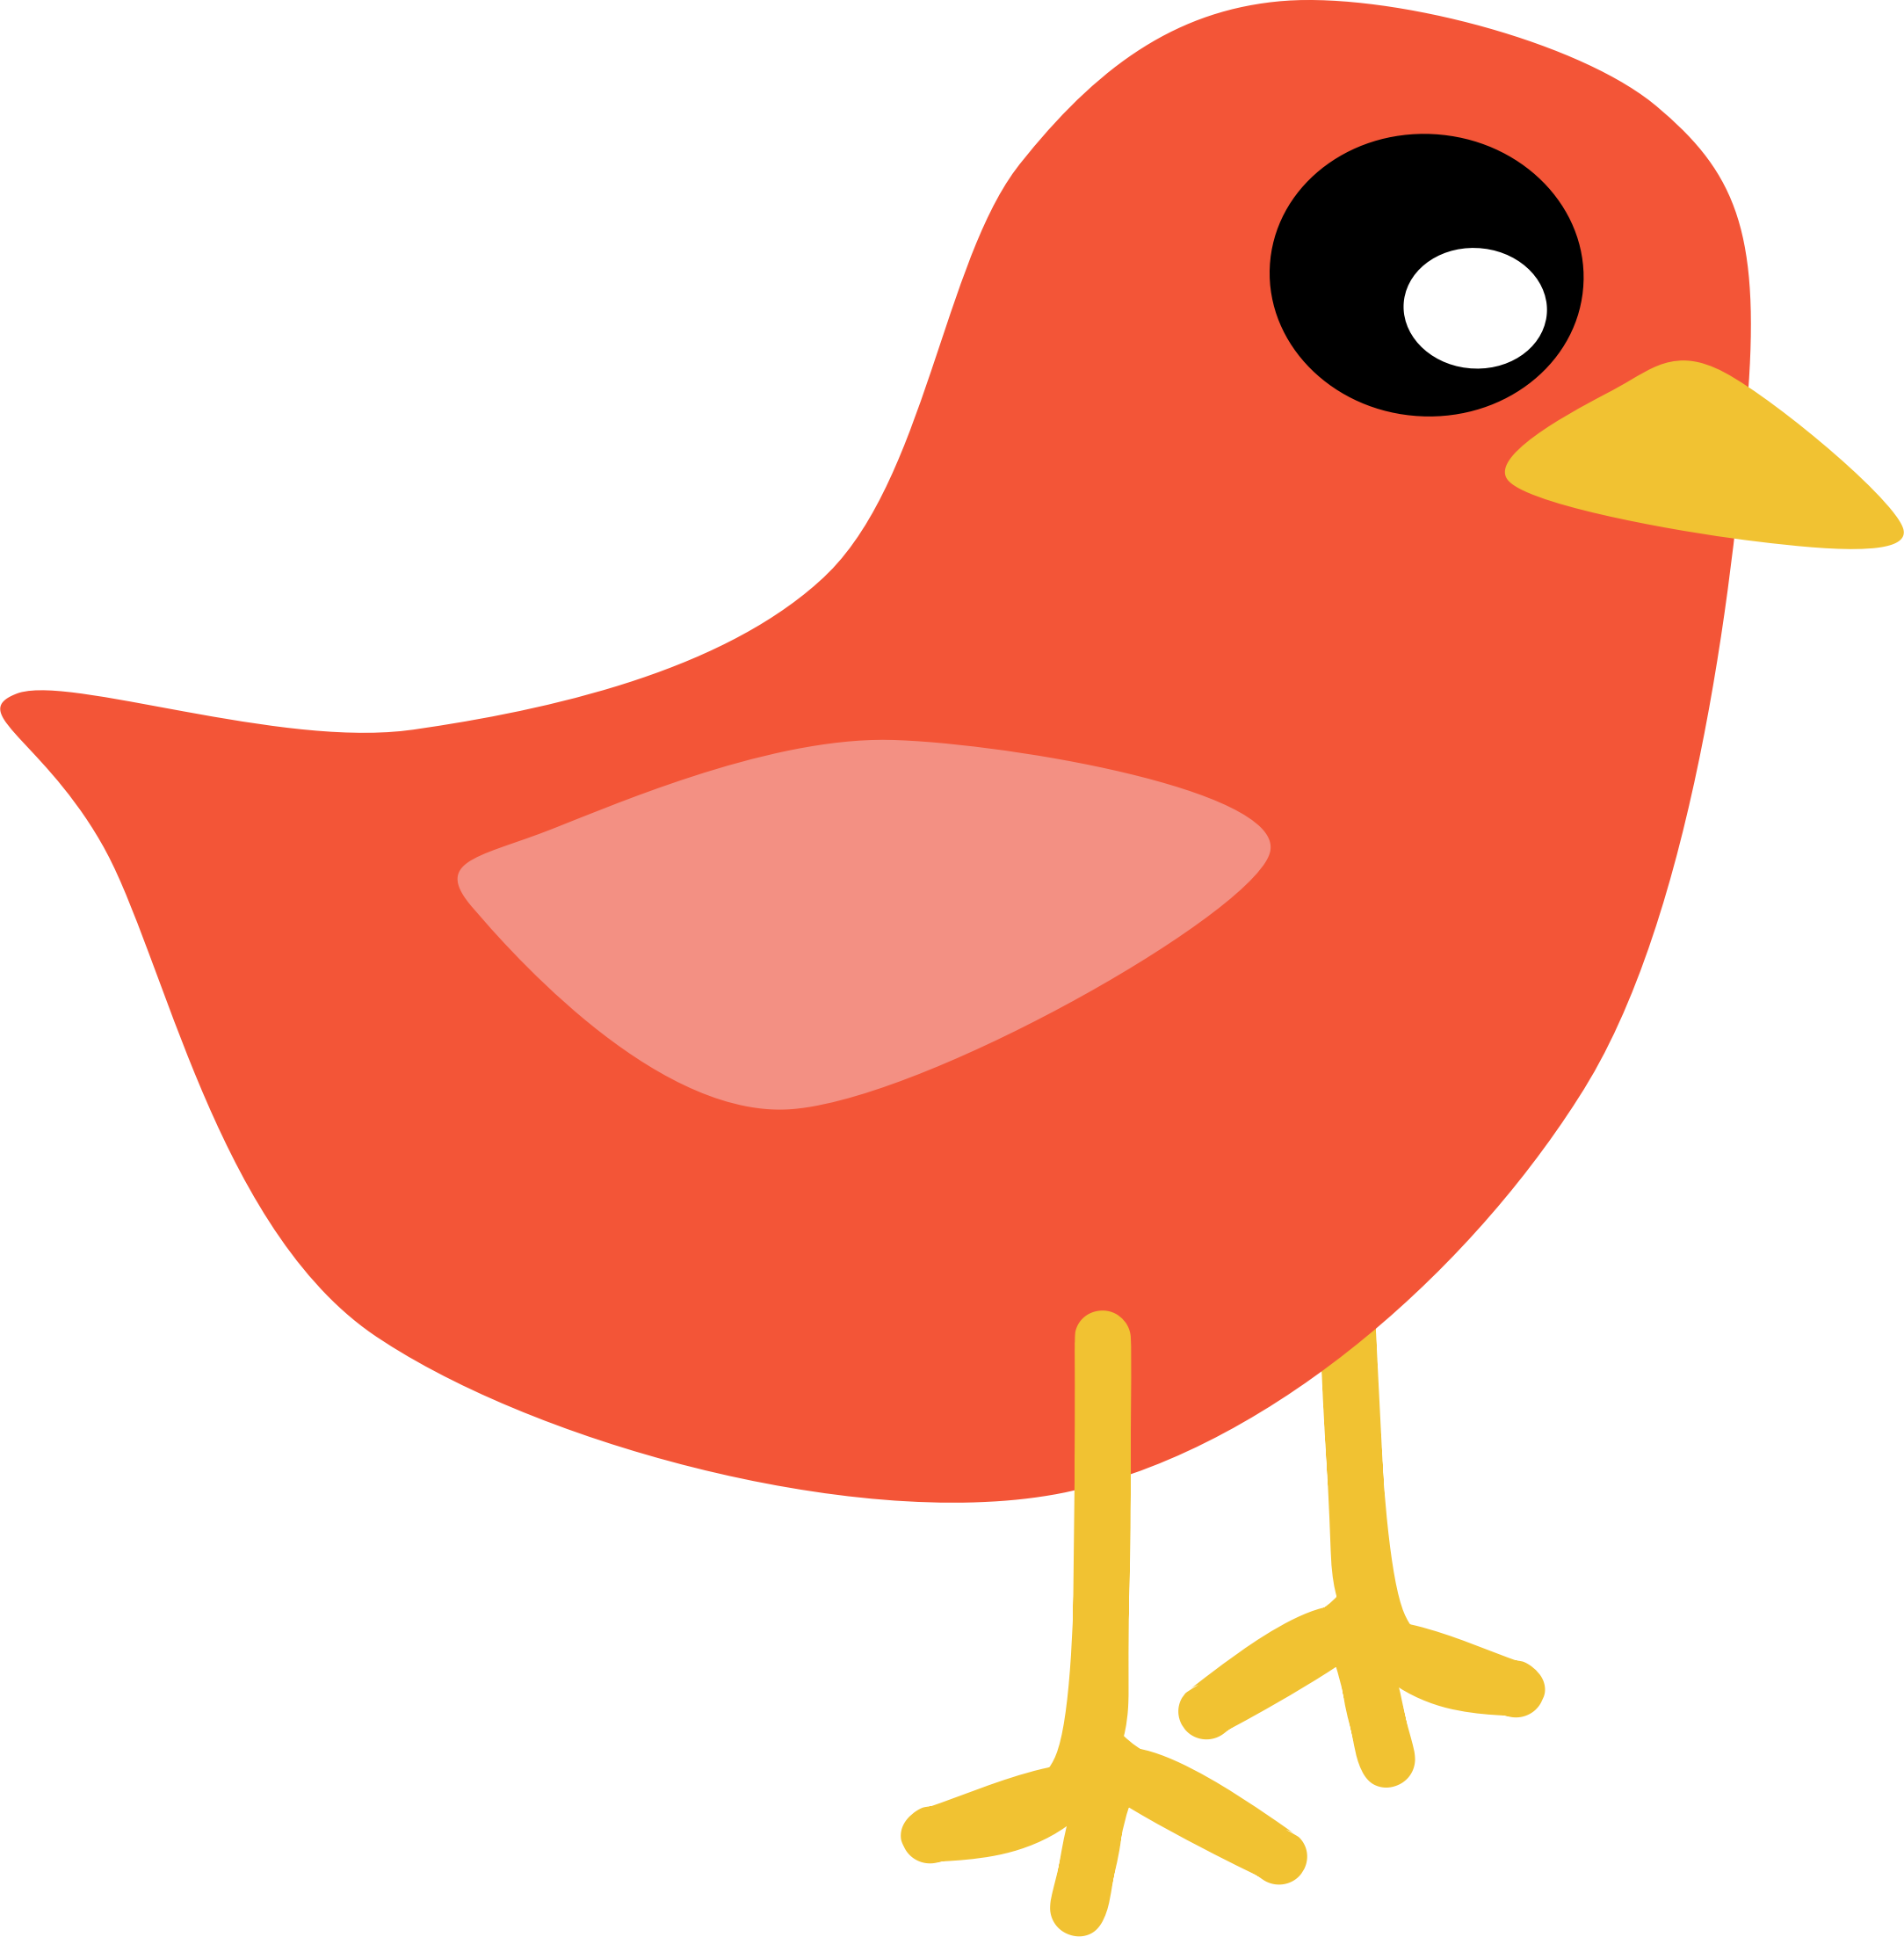 Spring birds clipart free clipart images 2.